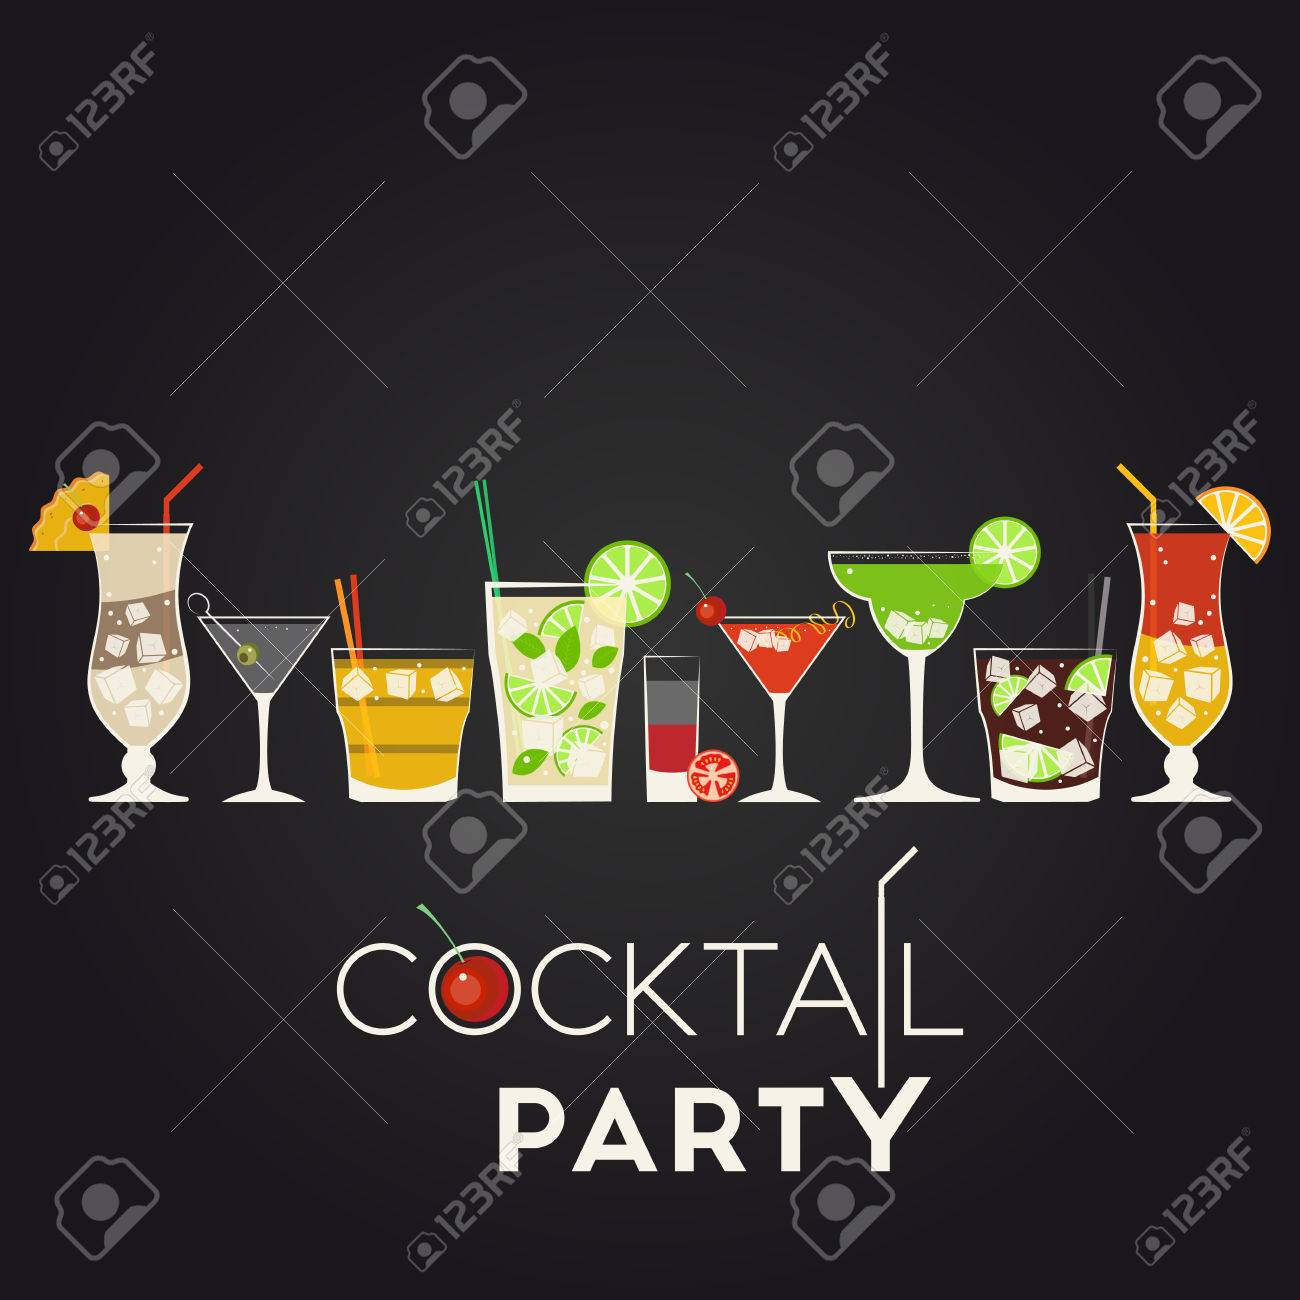 Vector set of different alcohol cocktails. Pina Colada, Dry Martini, Screwdriver, Mojito, Bloody Mary, Cosmopolitan, Margarita, Cuba Libre, Tequila Sunrise. Cocktail party invitation poster for your design - 38814813